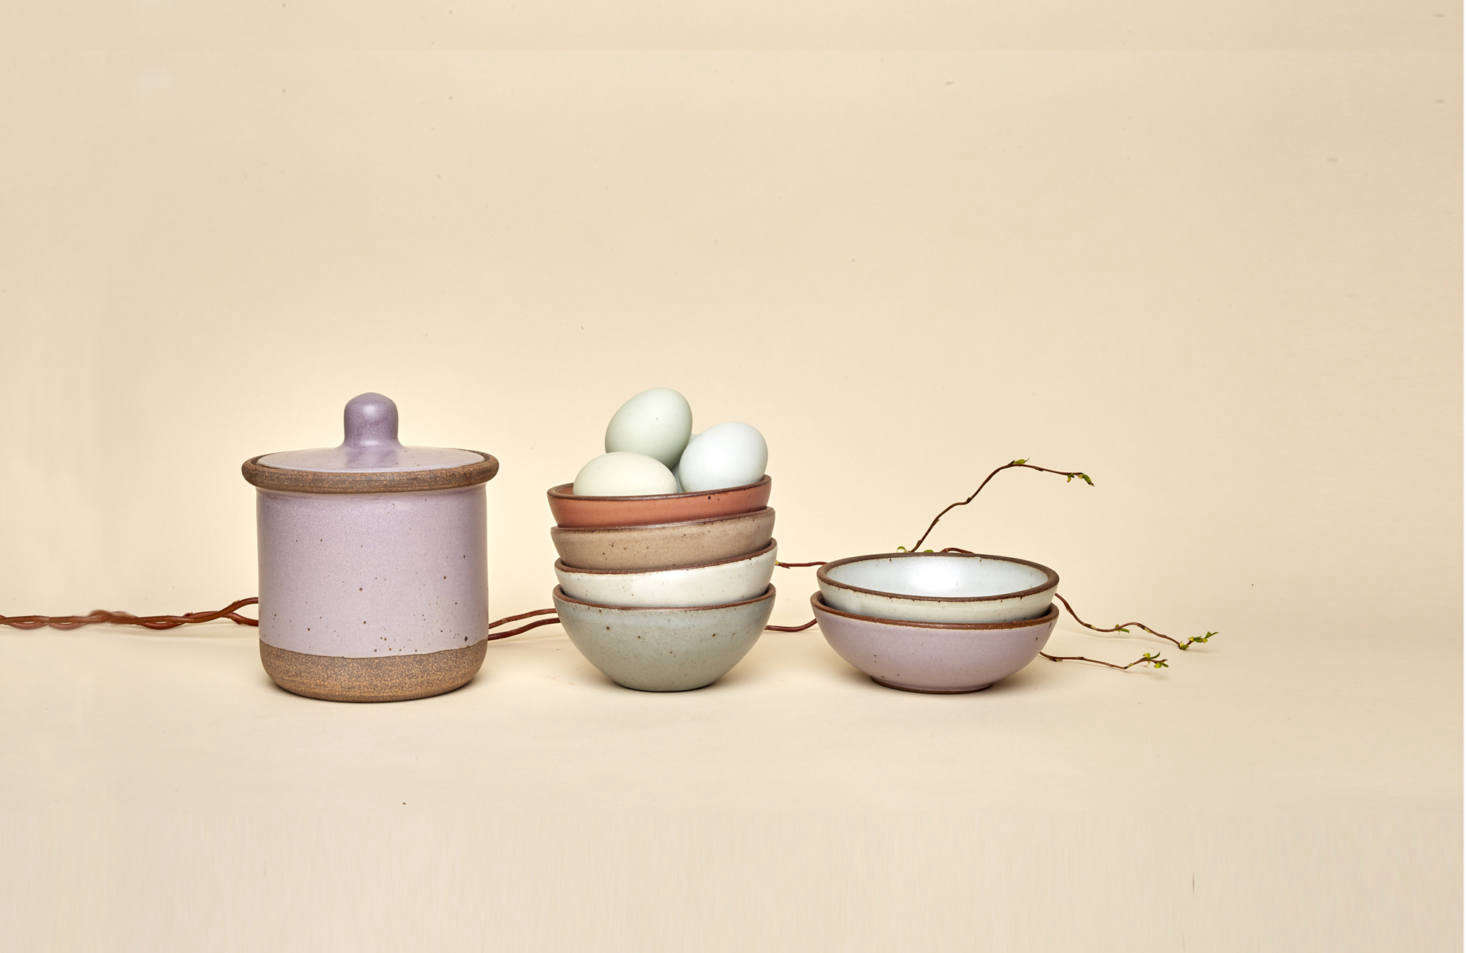 This season's new colorways, Utah (a burnished terracotta) and Taro (a lilac), alongside the existing Eggshell, Soapstone, and Morel glazes. The new glazes are the result of months of testing by the team's resident chemist and made possible by the gas kiln that the company uses. Shown here, left to right: the Medium Jar($78; currently sold out, but back soon), a stack ofSmall Potter's Bowls($28), and two Shallow Breakfast Bowls ($28).